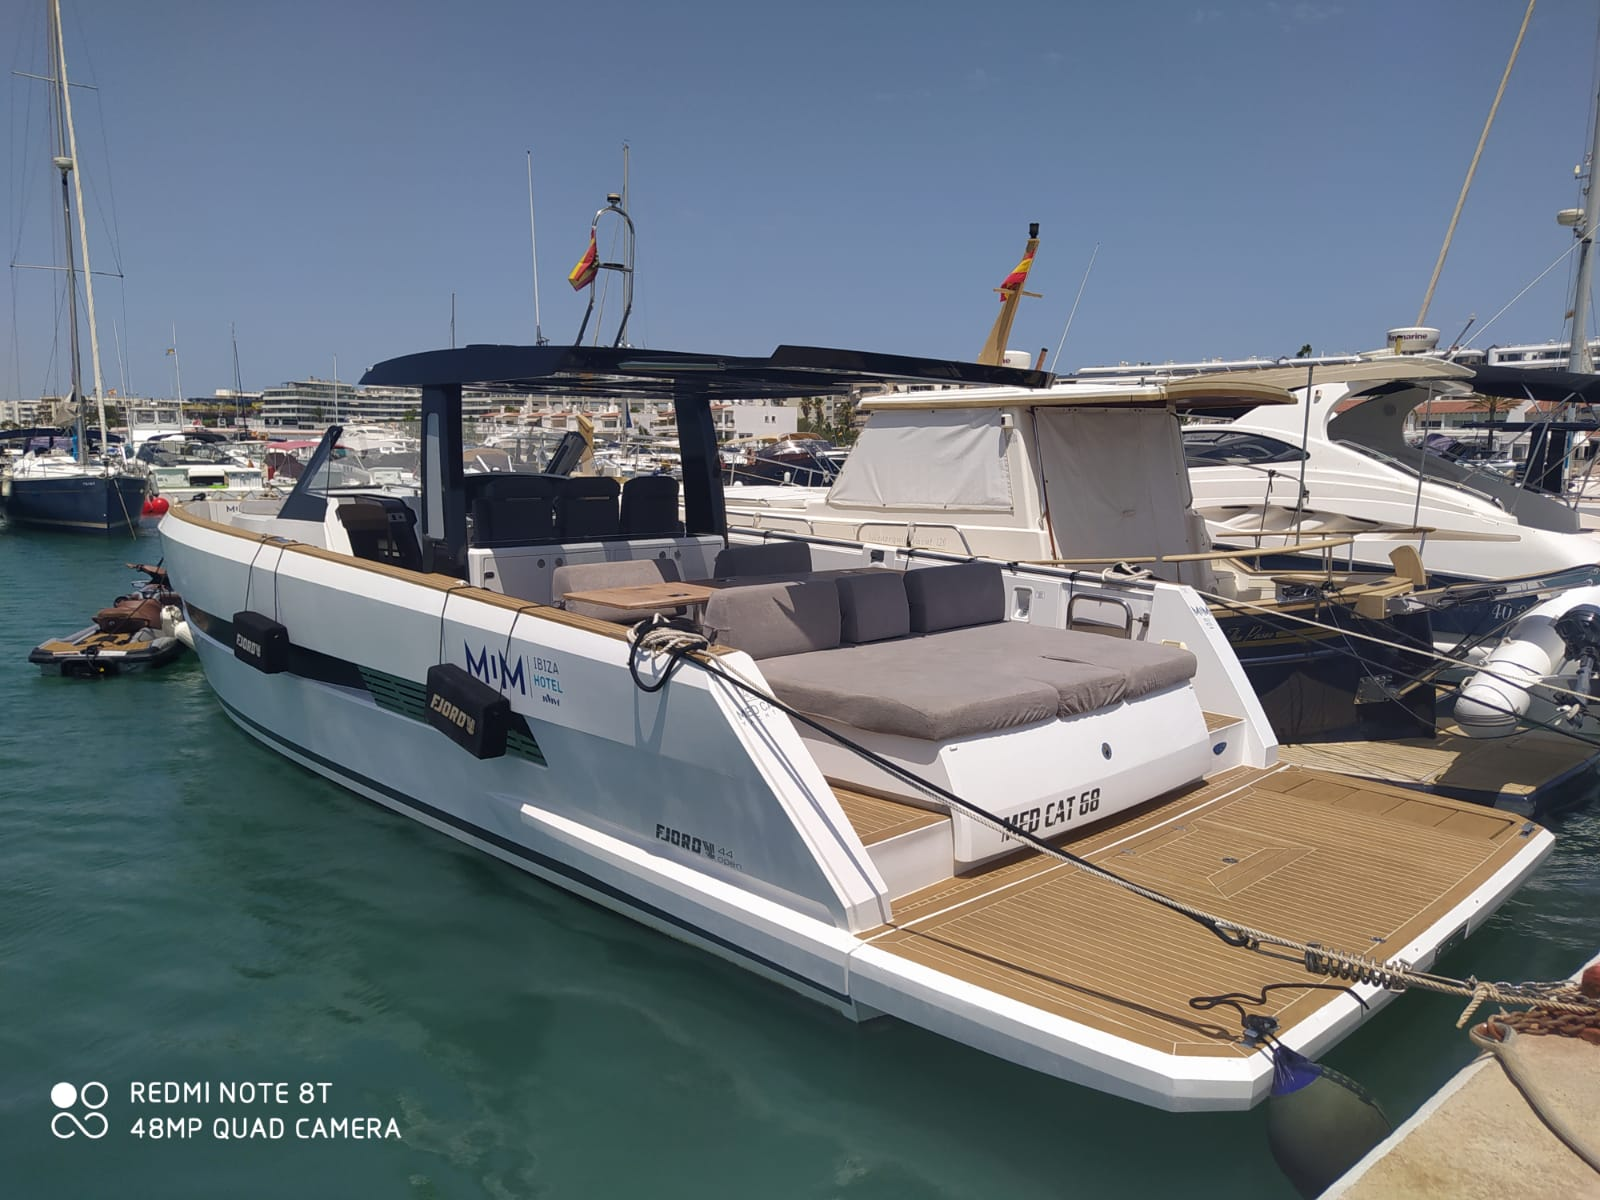 Fjord 44 Open (MEDCAT68 Available for daily charter only - From 10:00 to 20:00 - 0 night)  - 10